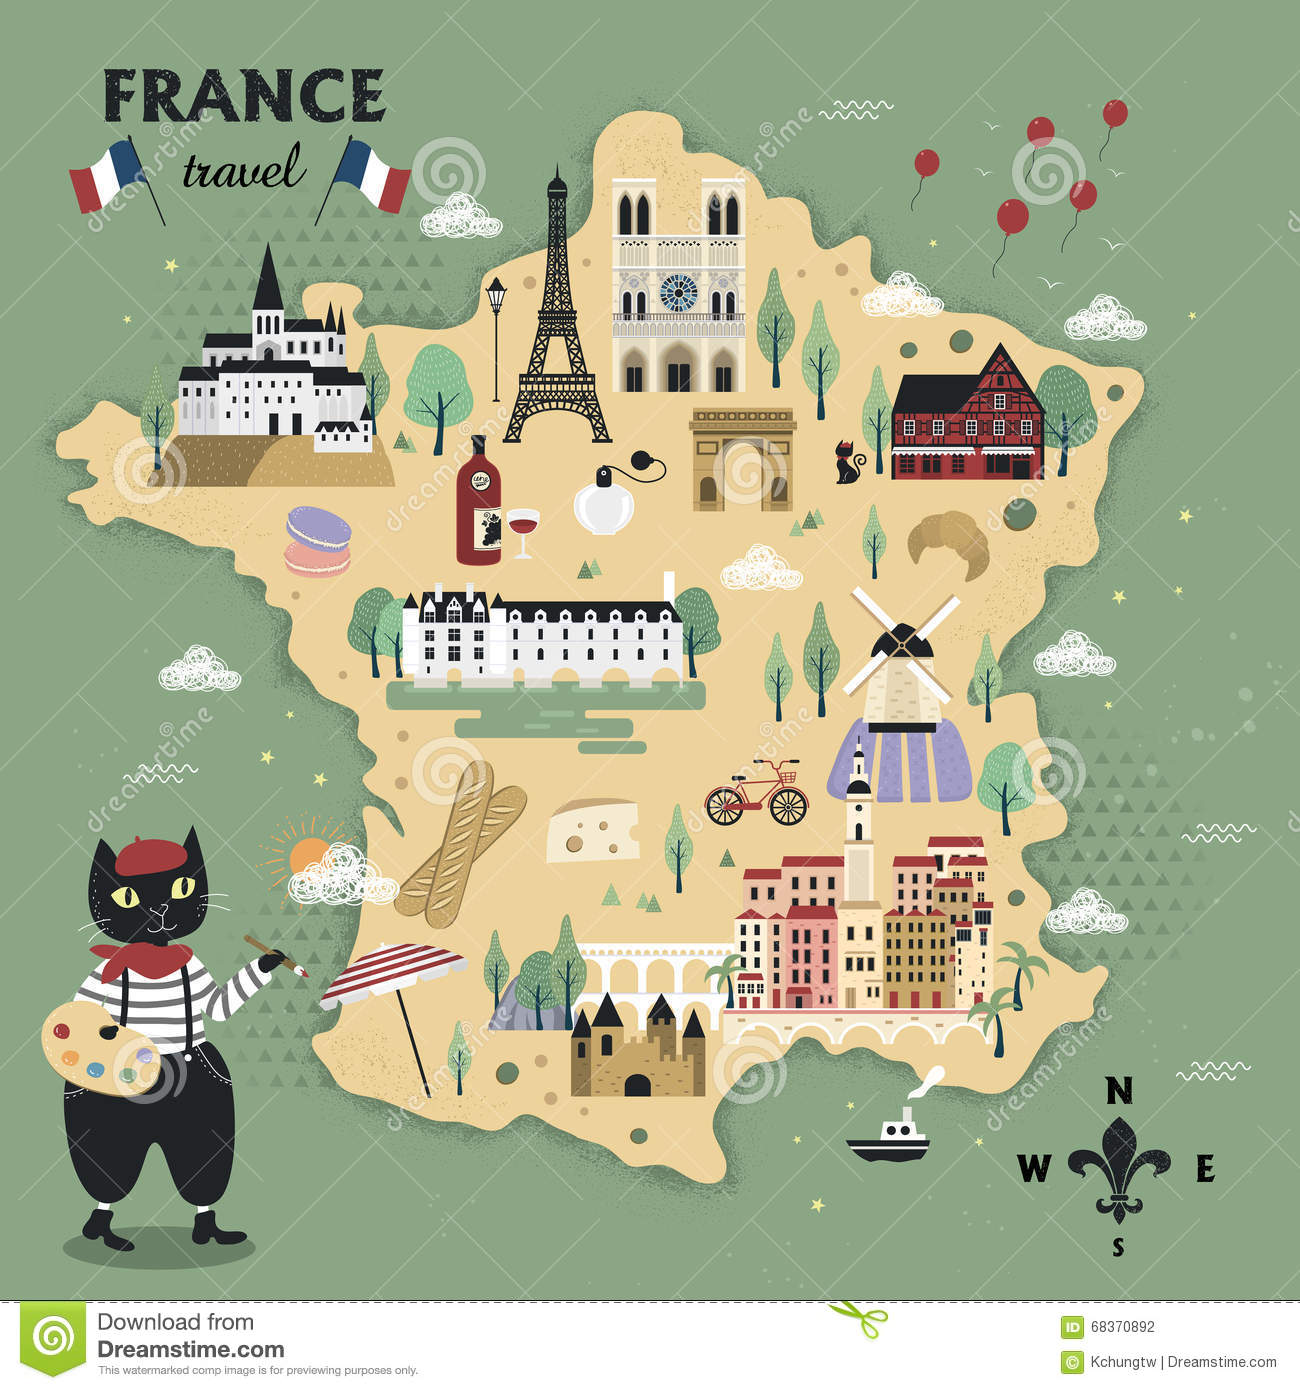 Adorable France Travel Map Vector Image 68370892 – France Tourist Attractions Map